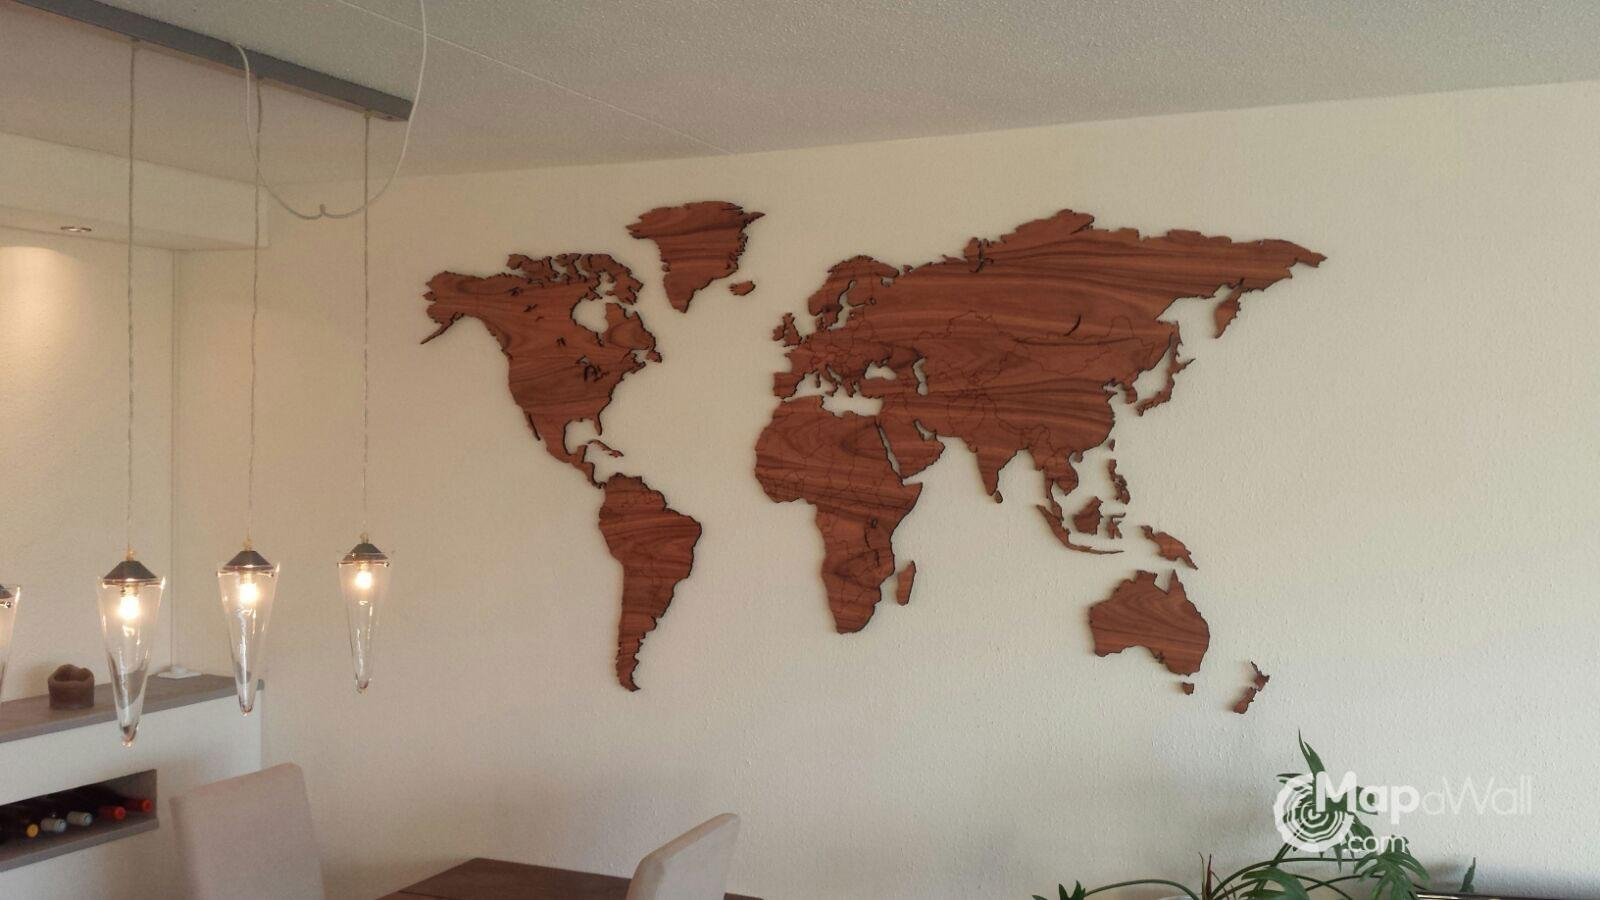 World Map Palisander – Mapawall For Wooden World Map Wall Art (Image 15 of 20)